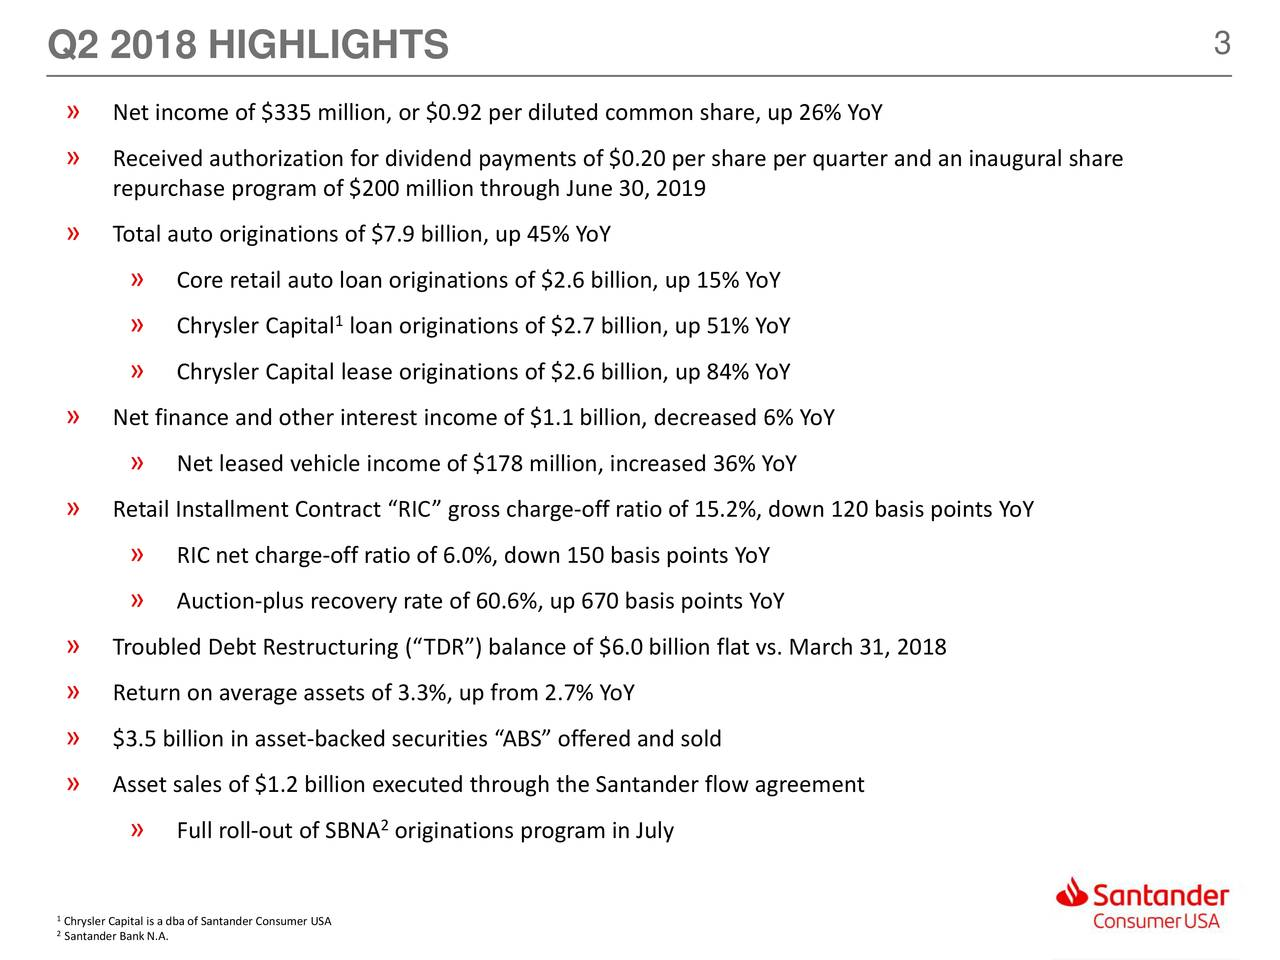 "» Net income of $335 million, or $0.92 per diluted common share, up 26% YoY » Received authorization for dividend payments of $0.20 per share per quarter and an inaugural share repurchase program of $200 million through June 30, 2019 » Total auto originations of $7.9 billion, up 45% YoY » Core retail auto loan originations of $2.6 billion, up 15% YoY » Chrysler Capital loan originations of $2.7 billion, up 51% YoY » Chrysler Capital lease originations of $2.6 billion, up 84% YoY » Net finance and other interest income of $1.1 billion, decreased 6% YoY » Net leased vehicle income of $178 million, increased 36% YoY » Retail Installment Contract ""RIC"" gross charge-off ratio of 15.2%, down 120 basis points YoY » RIC net charge-off ratio of 6.0%, down 150 basis points YoY » Auction-plus recovery rate of 60.6%, up 670 basis points YoY » Troubled Debt Restructuring (""TDR"") balance of $6.0 billion flat vs. March 31, 2018 » Return on average assets of 3.3%, up from 2.7% YoY » $3.5 billion in asset-backed securities ""ABS"" offered and sold » Asset sales of $1.2 billion executed through the Santander flow agreement » Full roll-out of SBNA originations program in July 1 Santander Bank N.A. a dba of Santander Consumer USA"